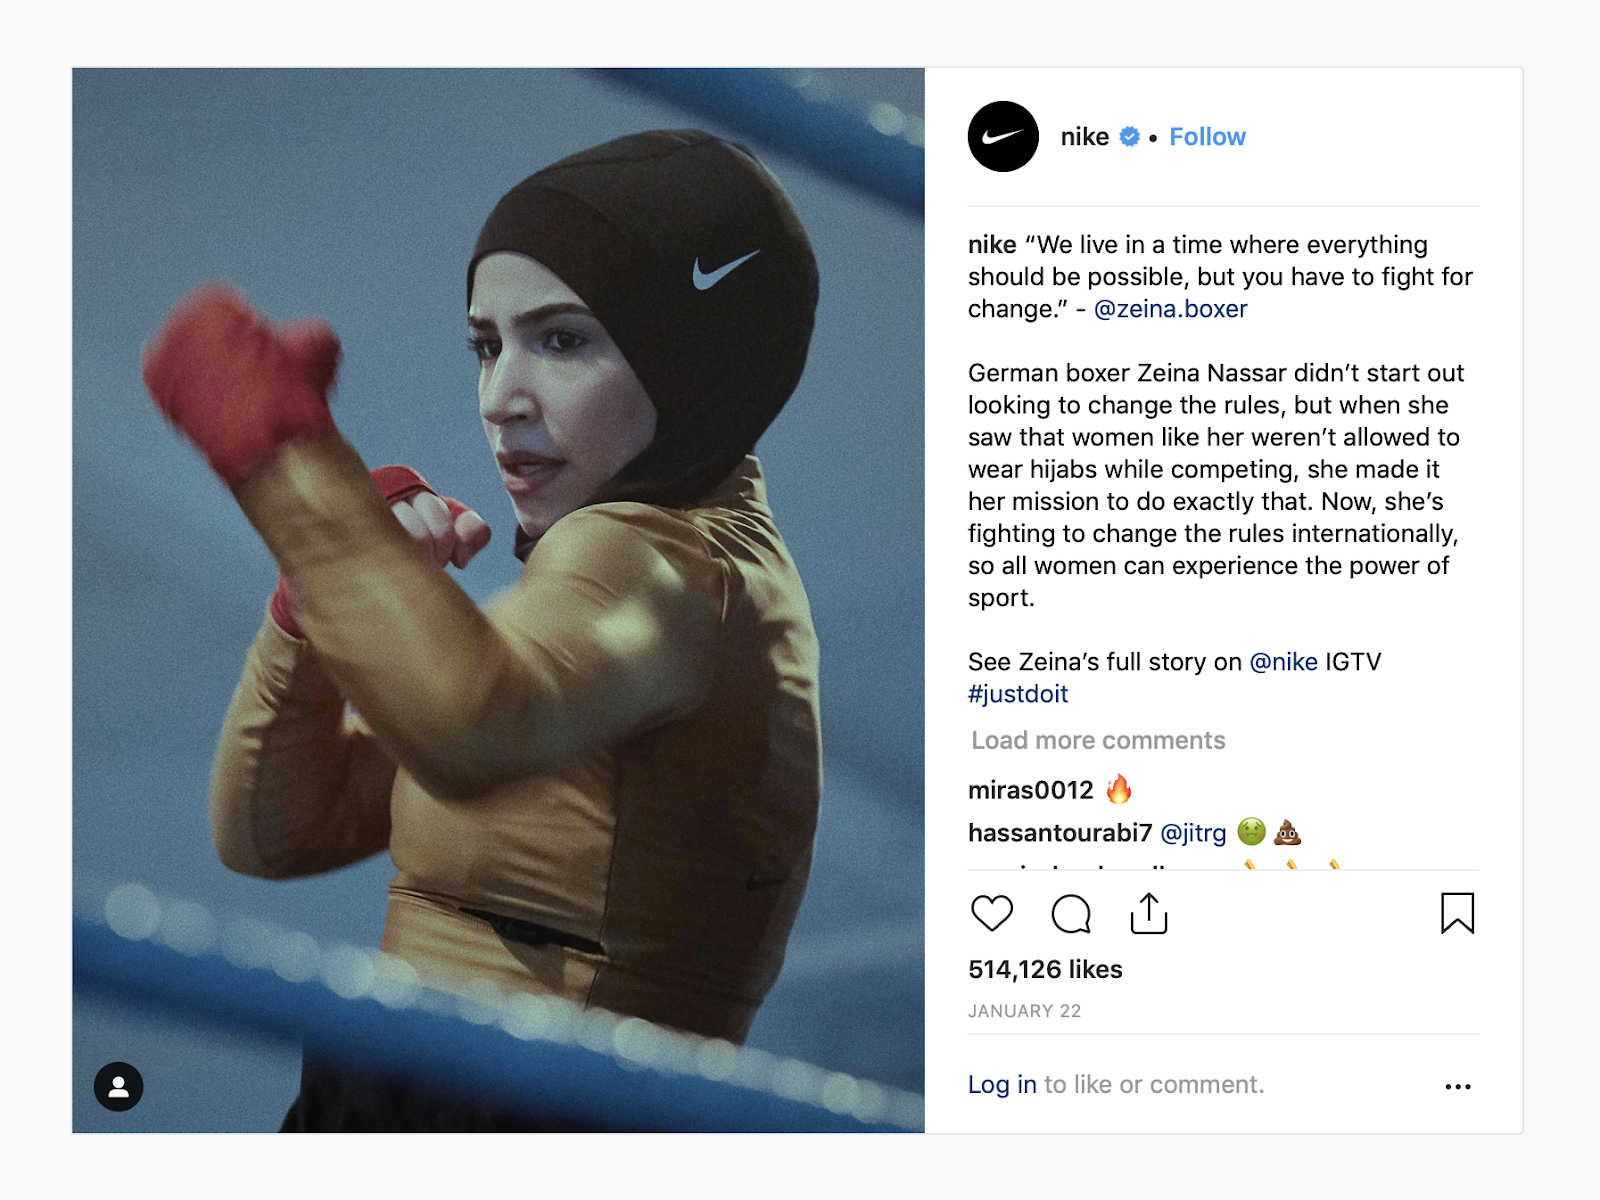 """Nike instagram caption reads: """"'We live in a time where everything should be possible, but you have to fight for change.' -@zeina.boxer German boxer Zeina Nassar didn't start out looking to change the rules, but when she saw that women like her weren't allowed to wear hijabs while competing, she made it her mission to do exactly that. Now she's fighting to change the rules internationally, so all women can experience the power of sport."""""""